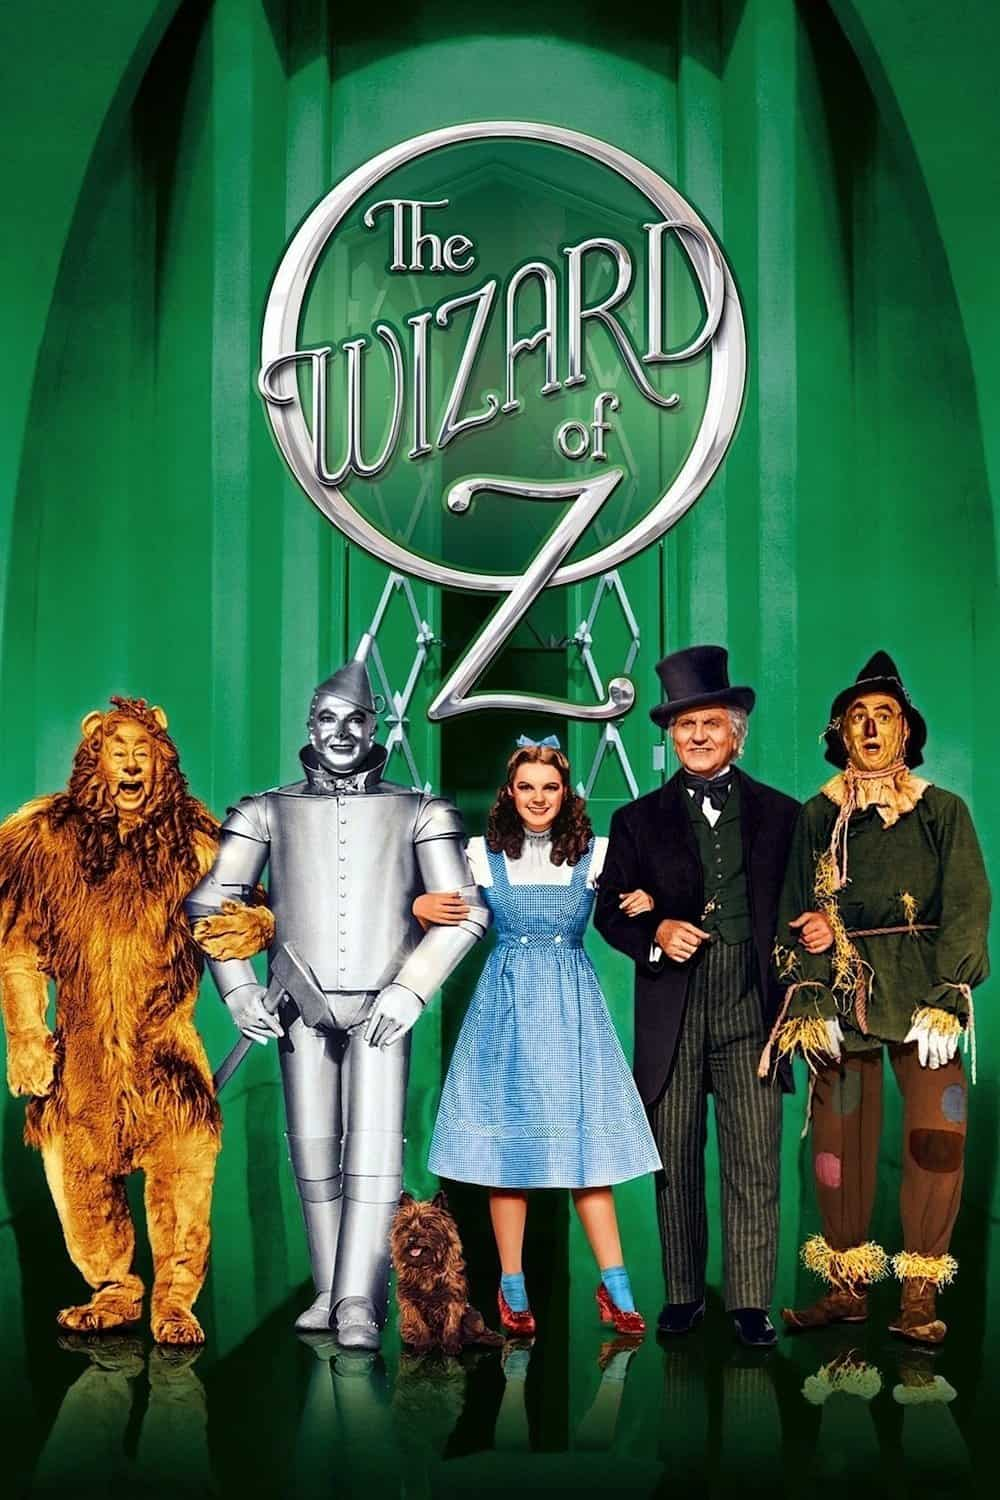 The Wizard of Oz,1939